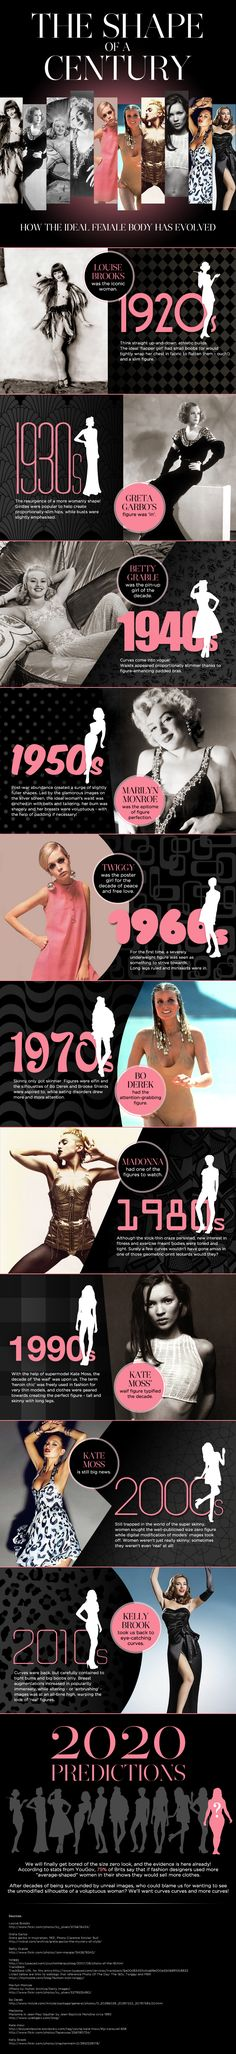 "How Have Women's Bodies Evolved? - The online fashion retailer, Marisota, created this infographic that takes a look at the evolution of culture's definition of the ""perfect"" women. The infographic ti Fashion Infographic, Timeline Infographic, Web Design, Email Design, Vintage Outfits, Vintage Fashion, Fashion Vocabulary, Evolution Of Fashion, Newsletter Design"